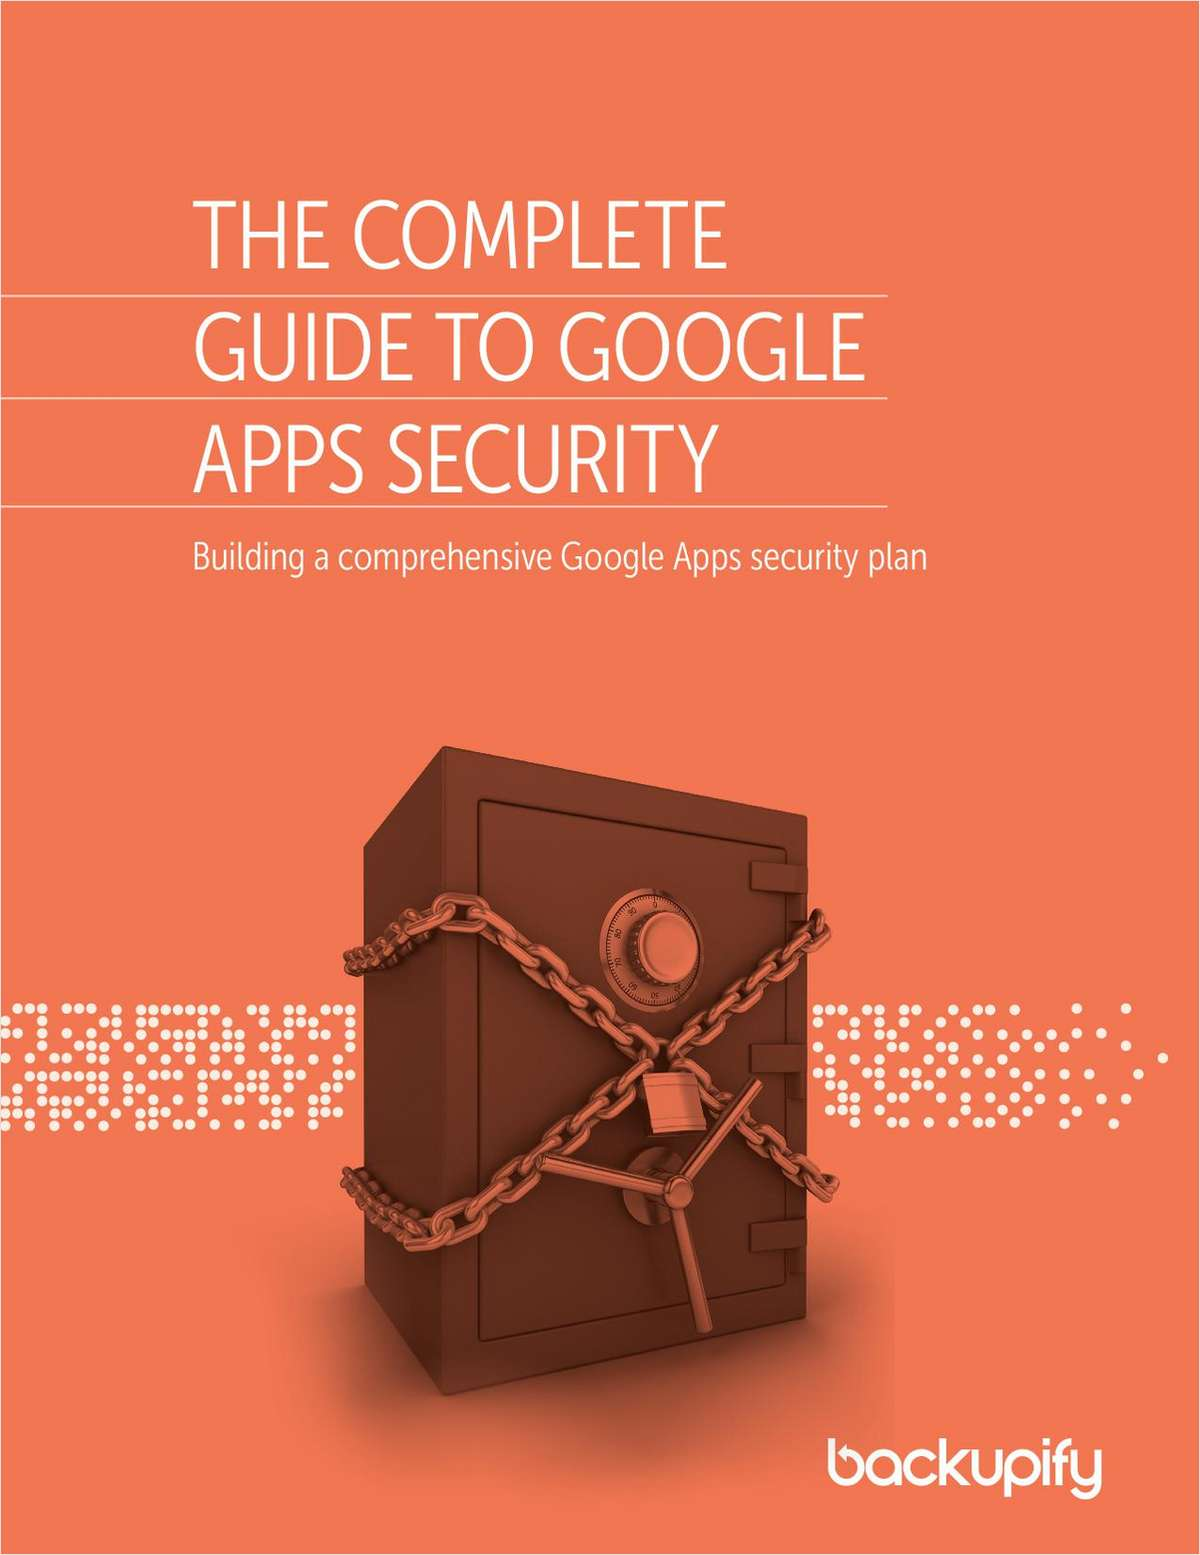 The Complete Guide to Google Apps Security